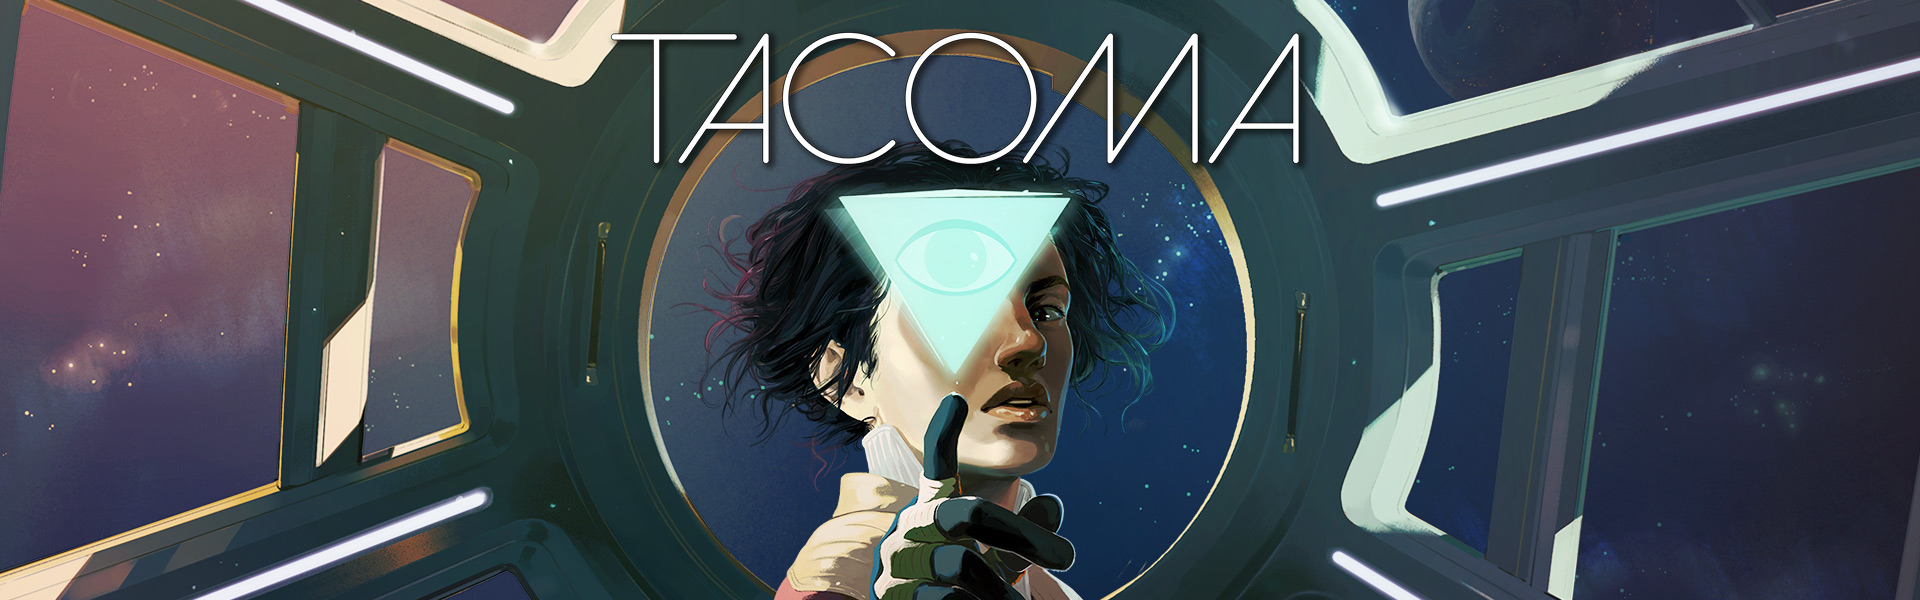 Tacoma. Main character points at AI with stars in background